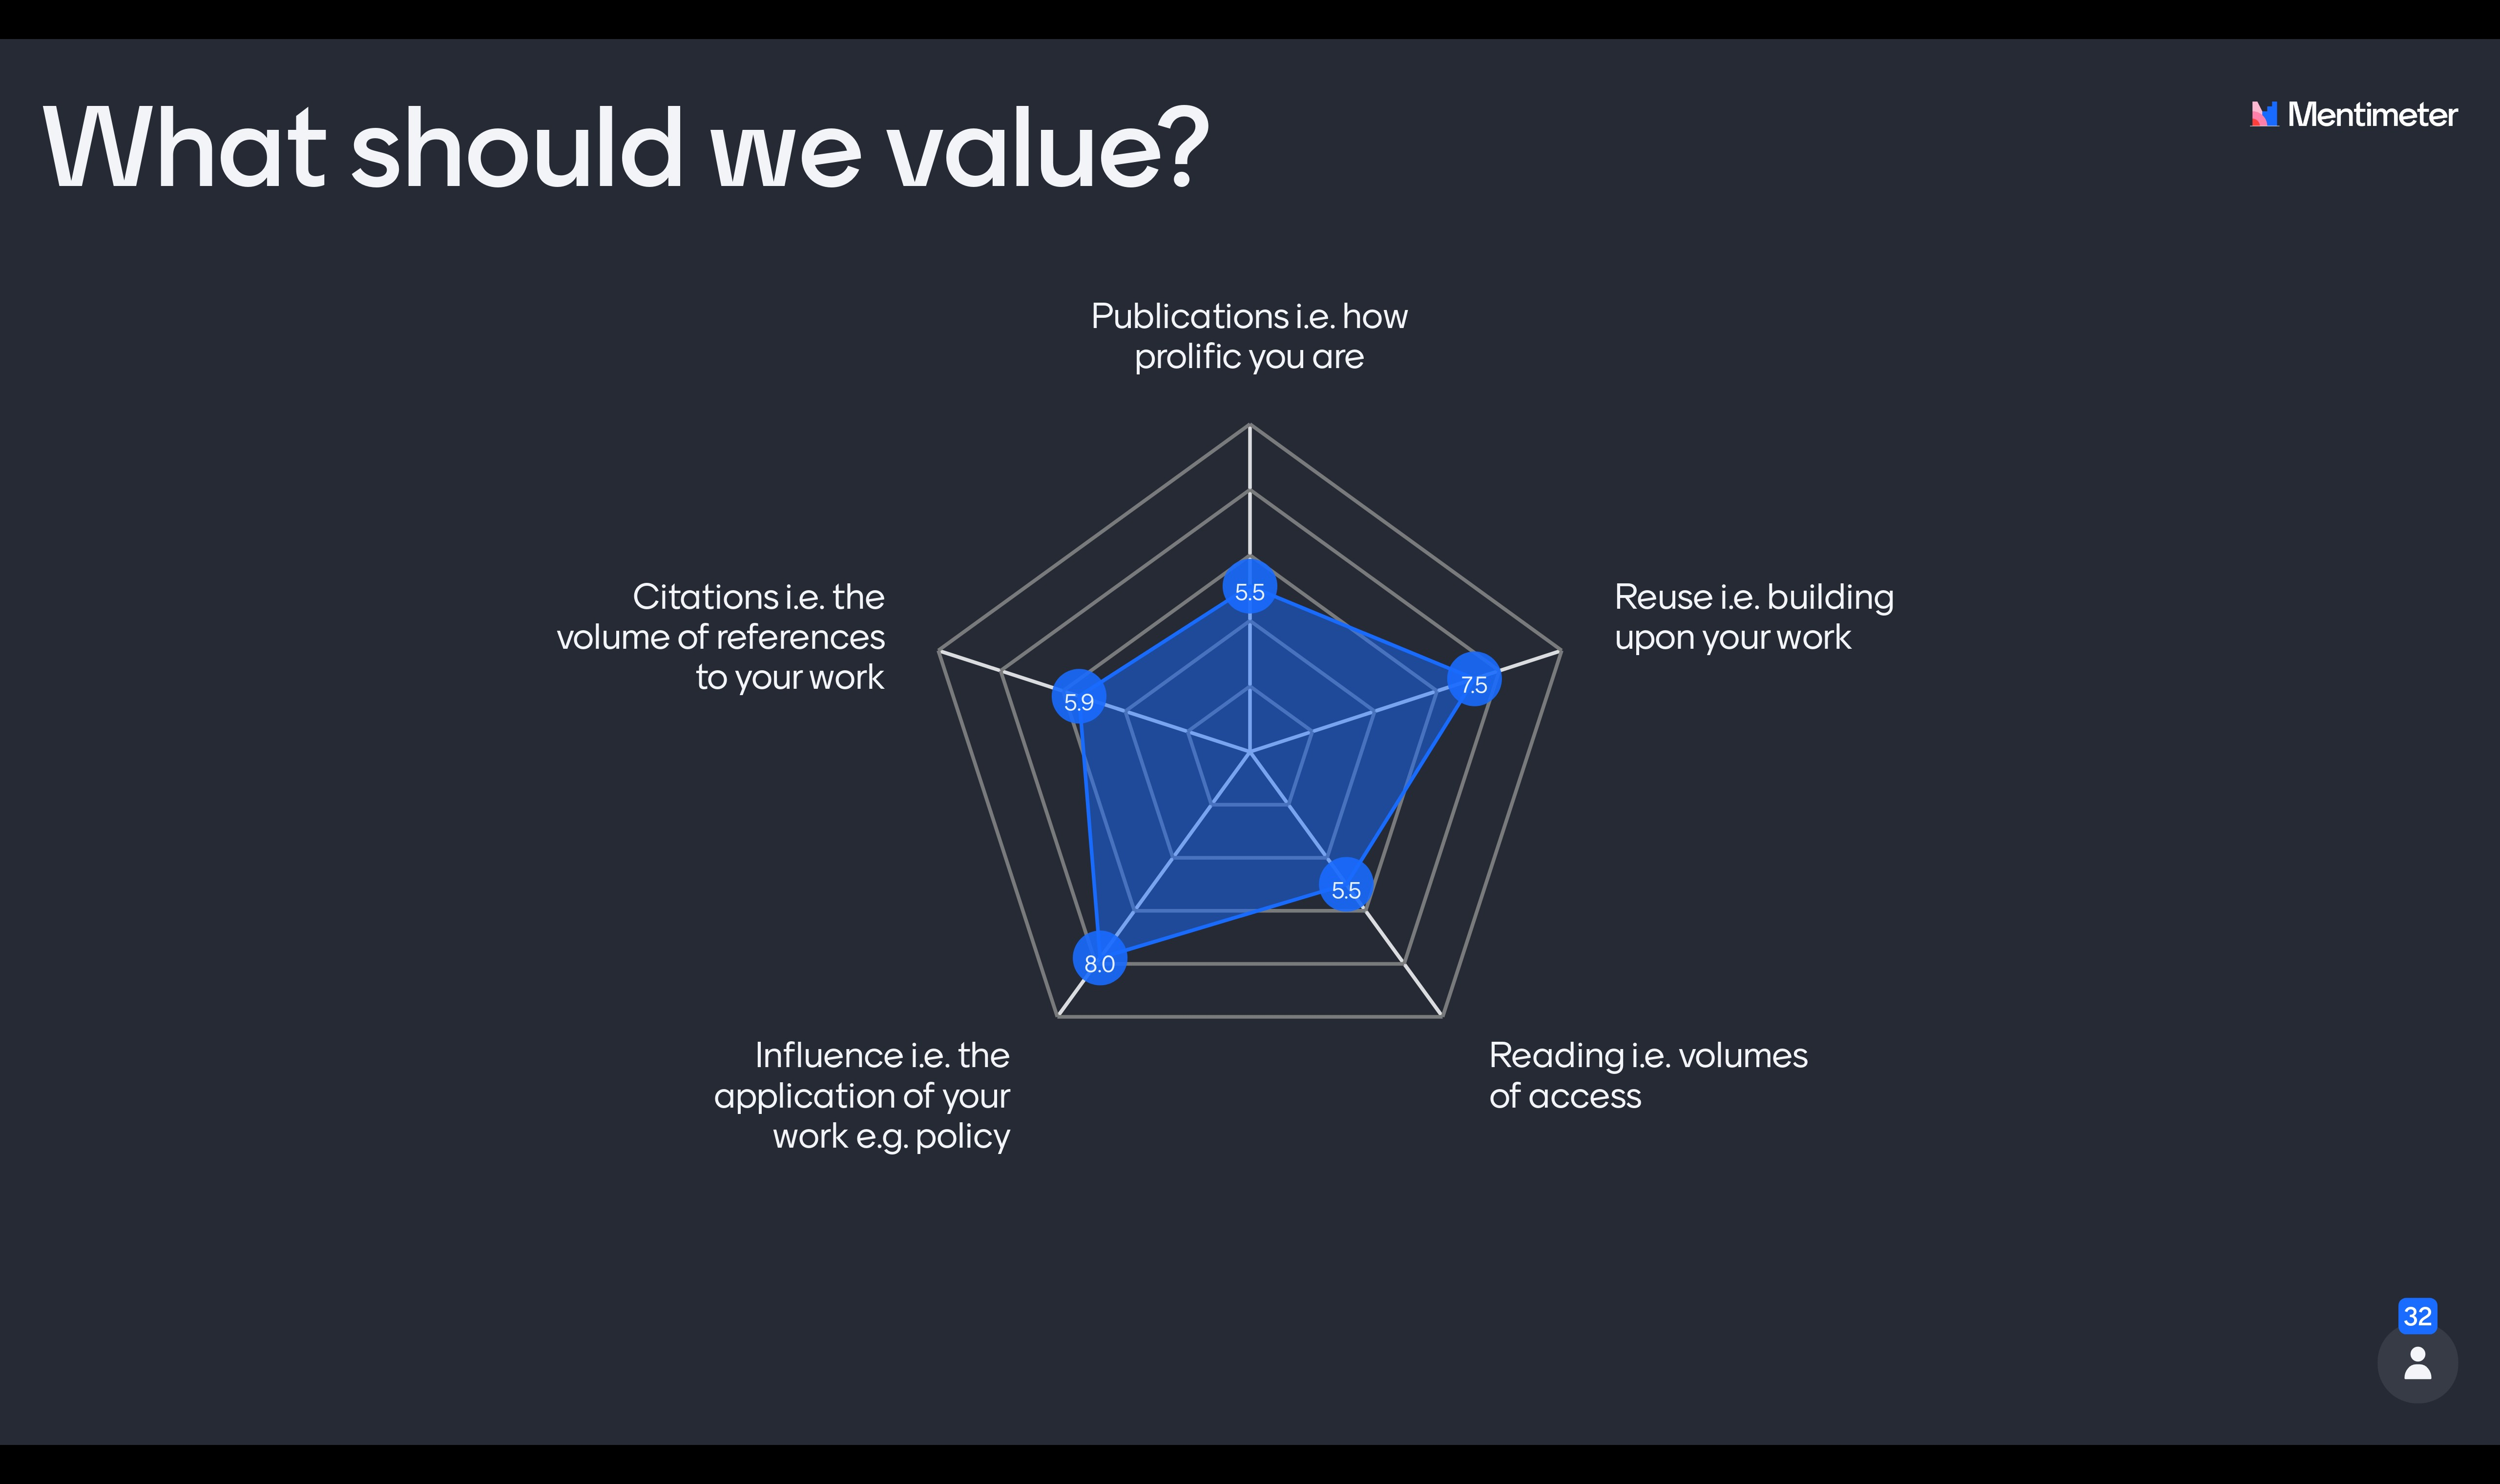 Graph showing responses to what should we value